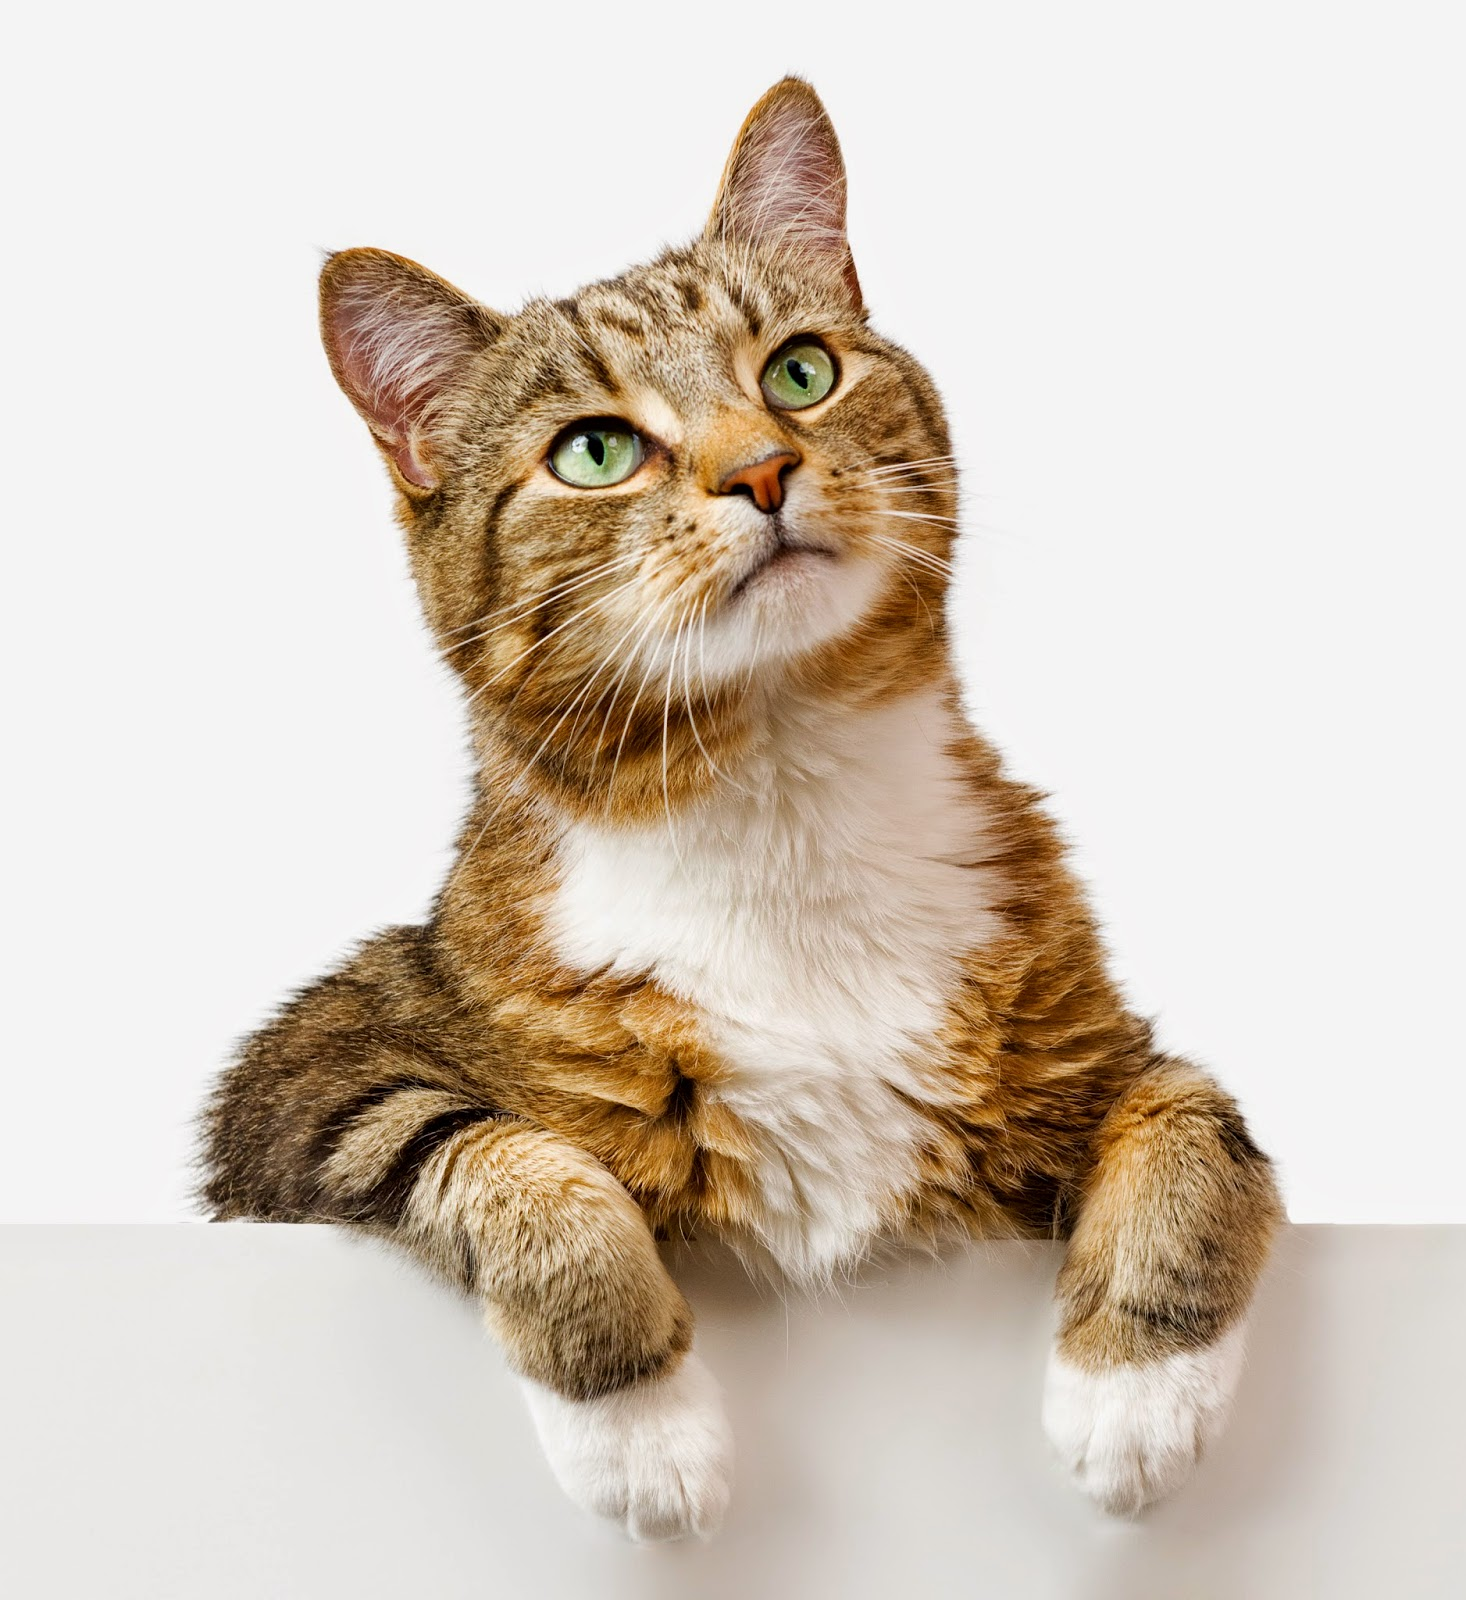 Medi-Vet Blog For Pets: Ten Need-to-Know Cat Facts